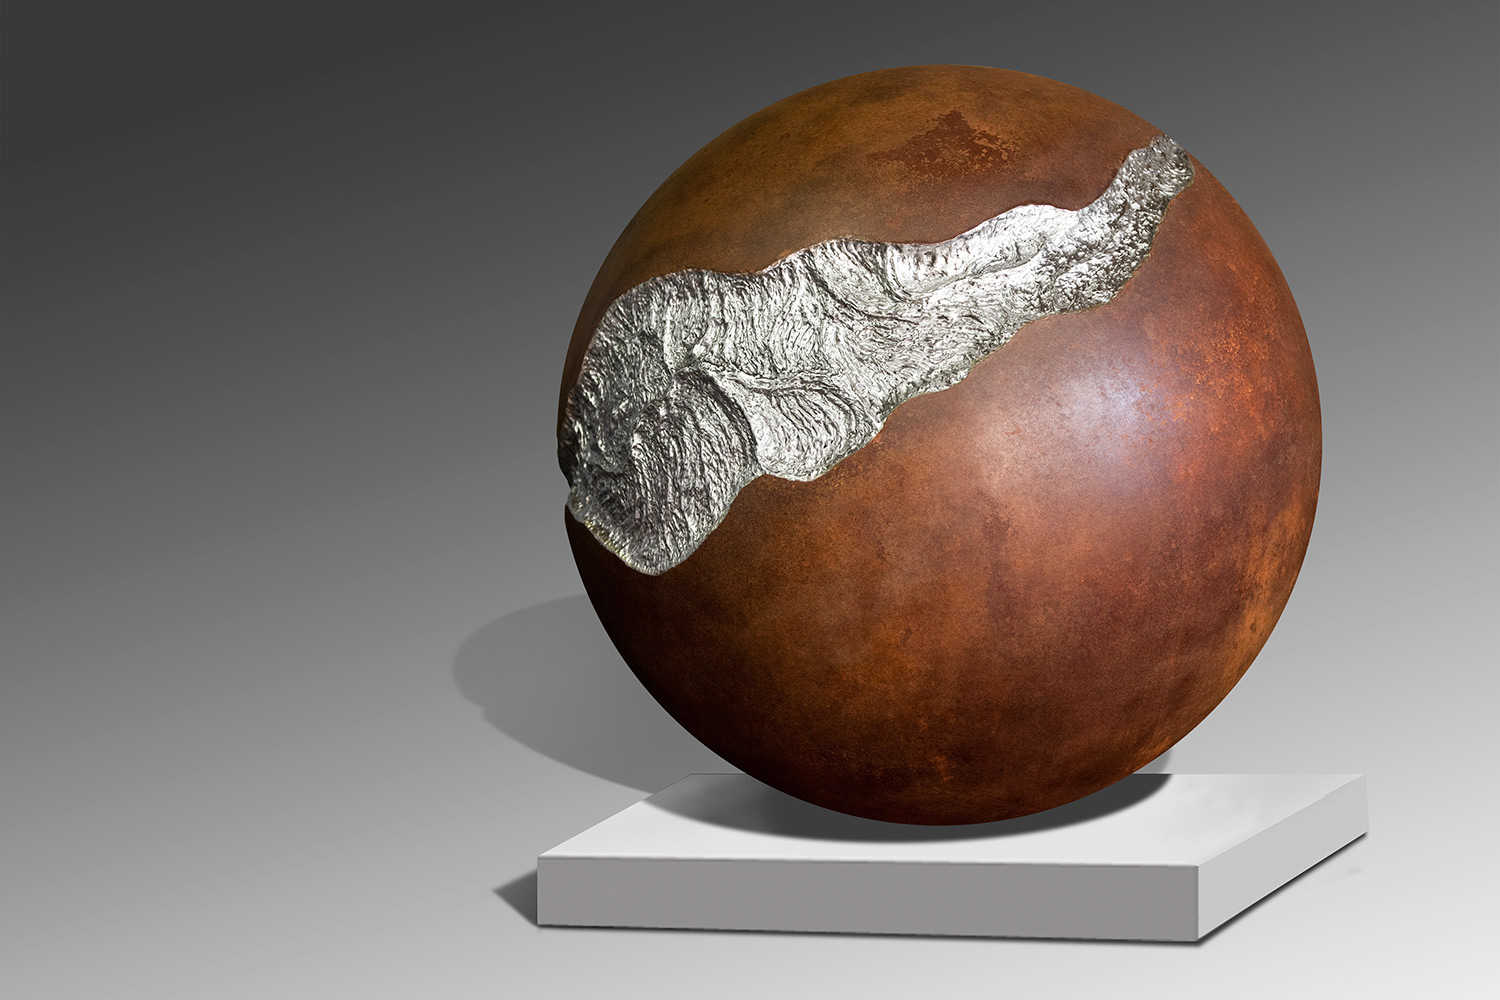 Rift / Oxidized and Stainless Steel / 41 x 41 x 41 inches | 104 x 104 x 104 cm